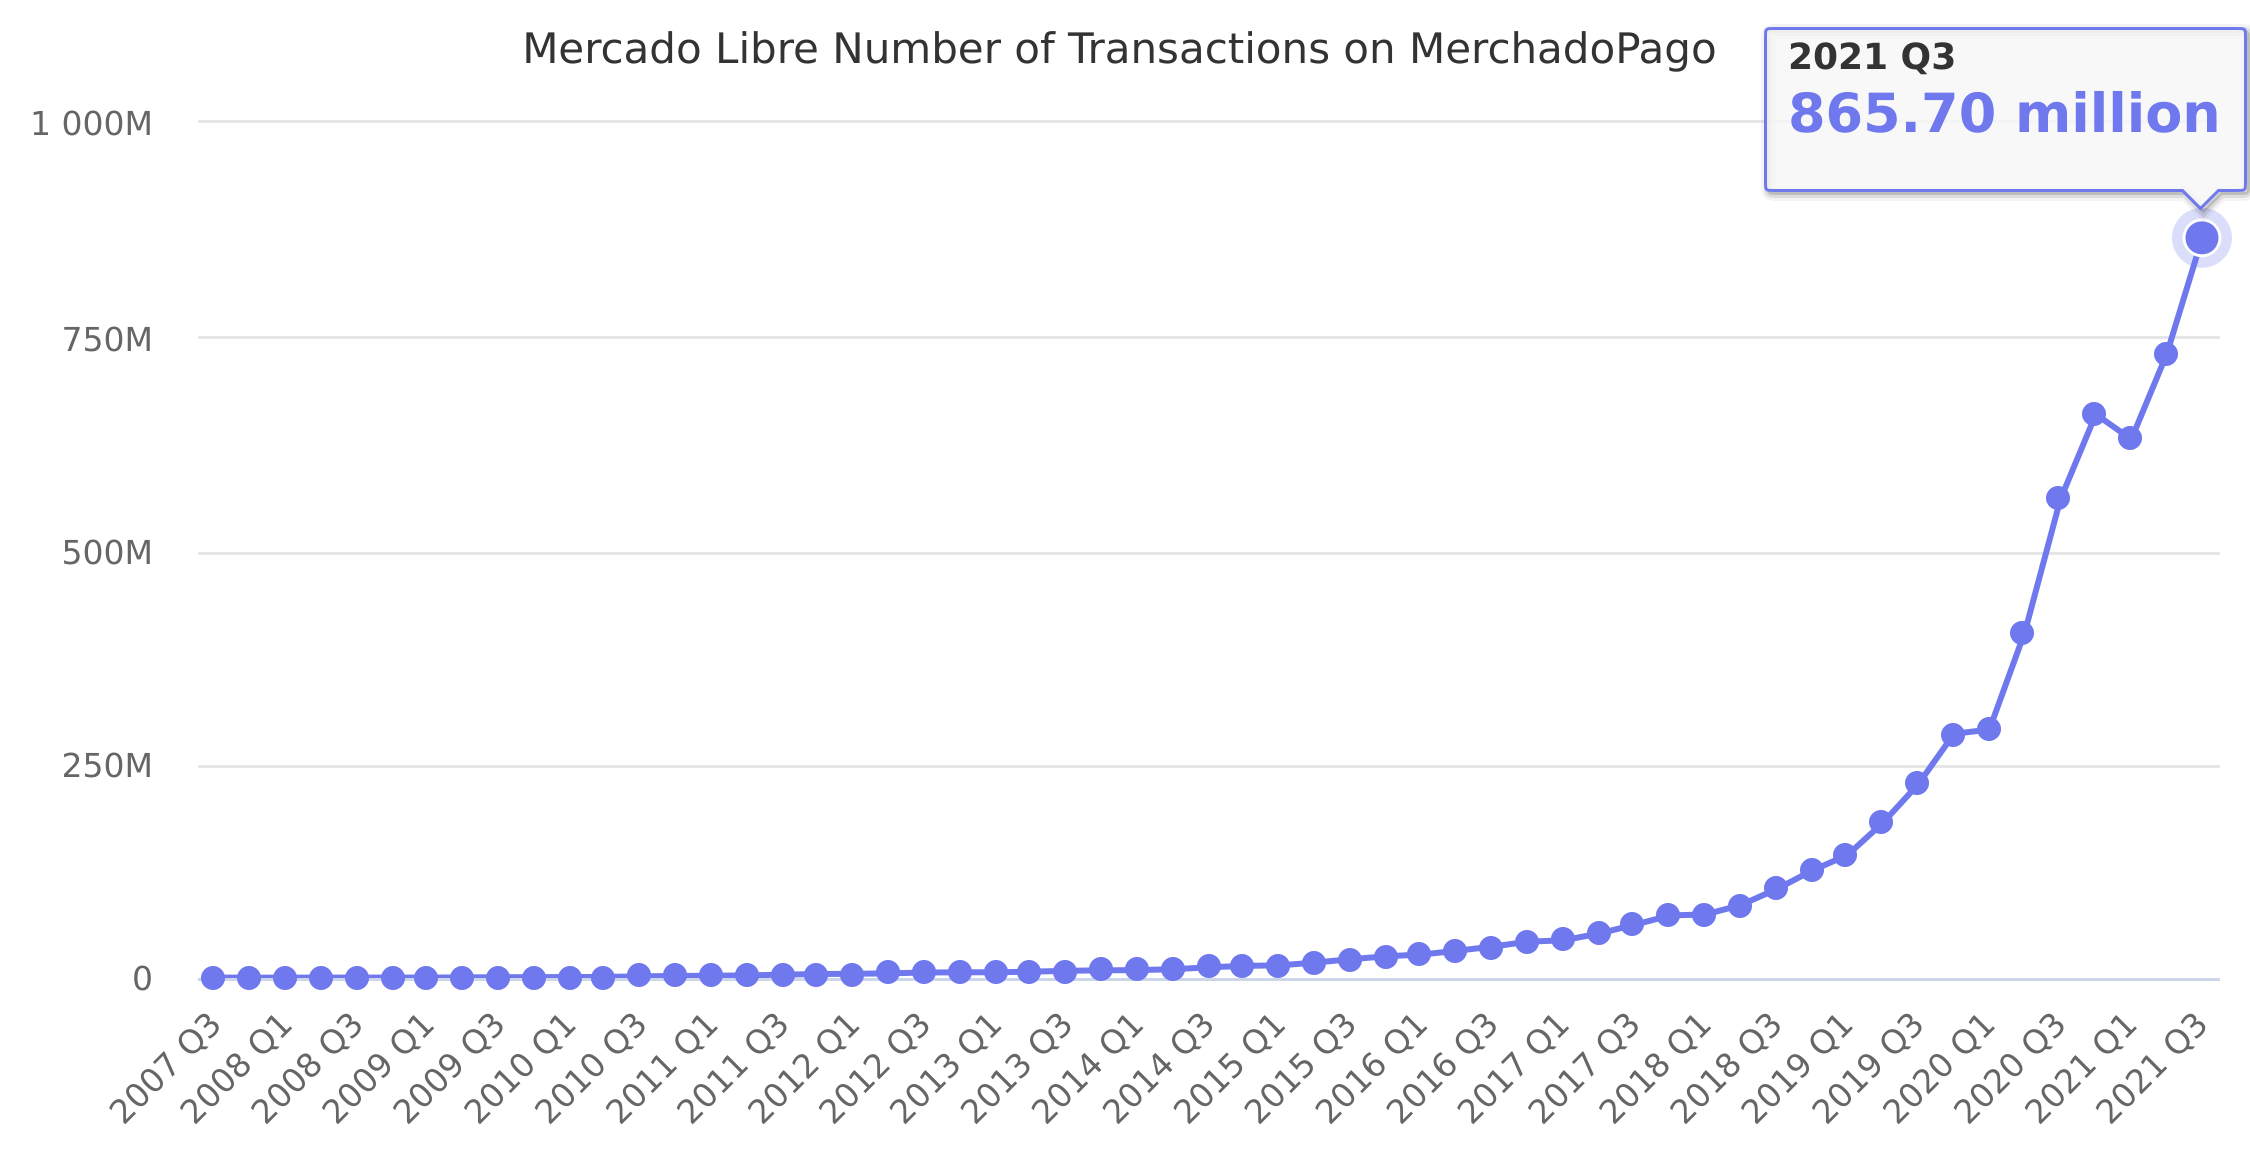 Mercado Libre Number of Transactions on MerchadoPago 2007-2019